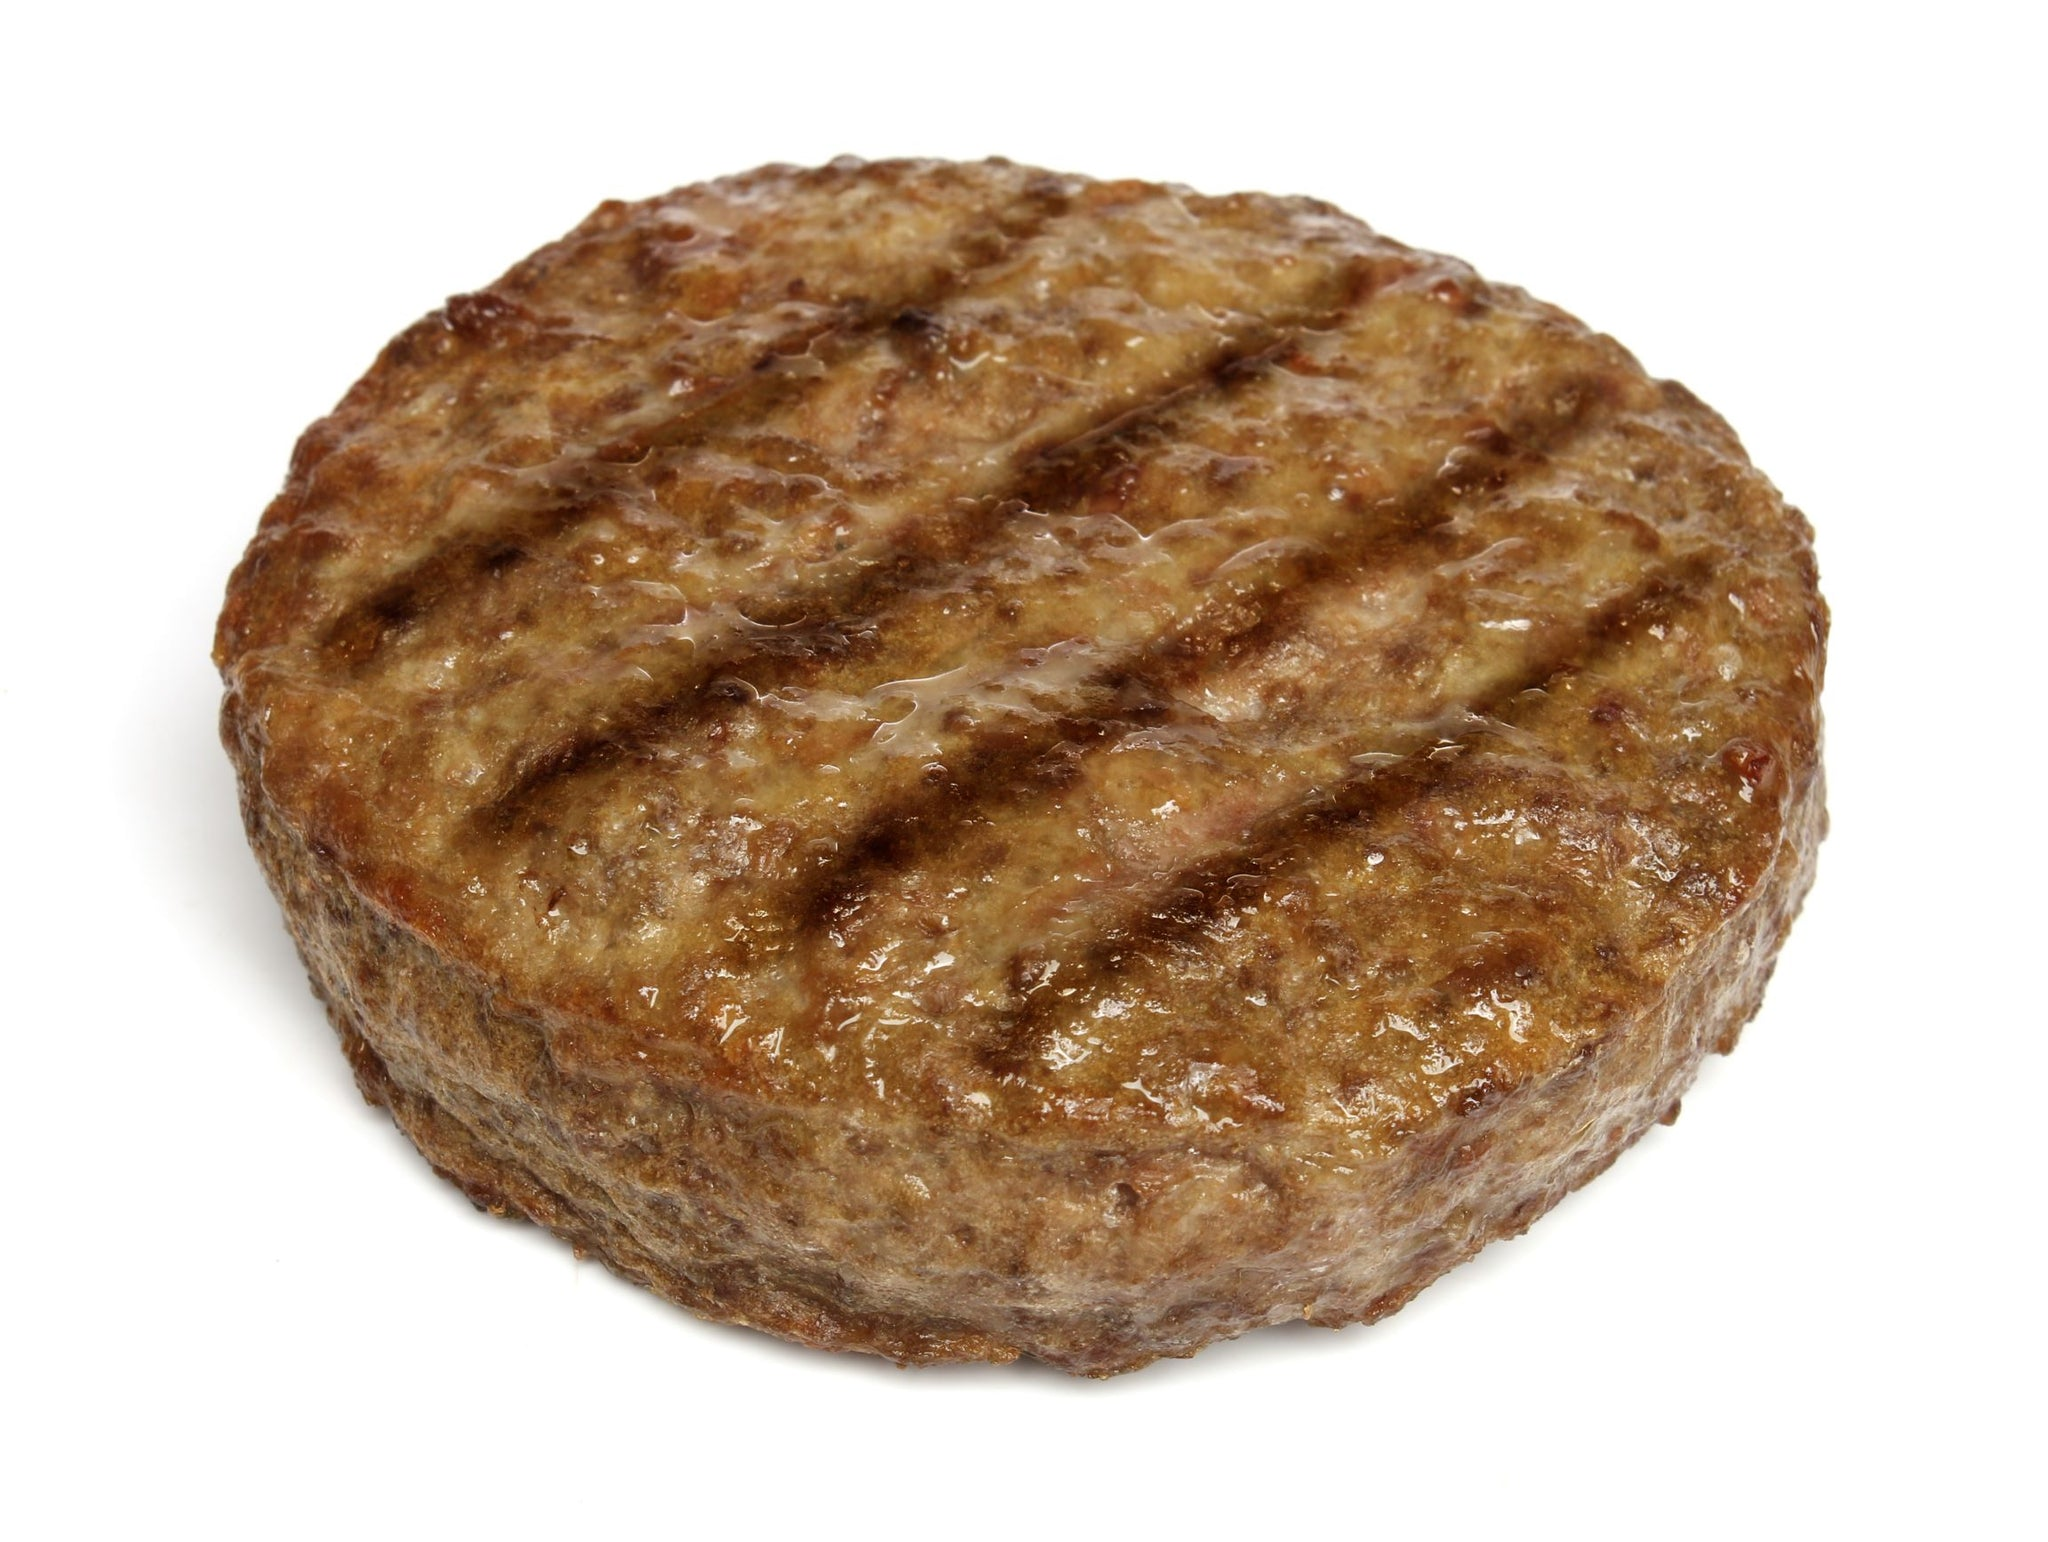 Fire River Farms Frozen Homestyle Beef Burger 5.3 oz - 60 Pack [$1.92/each]